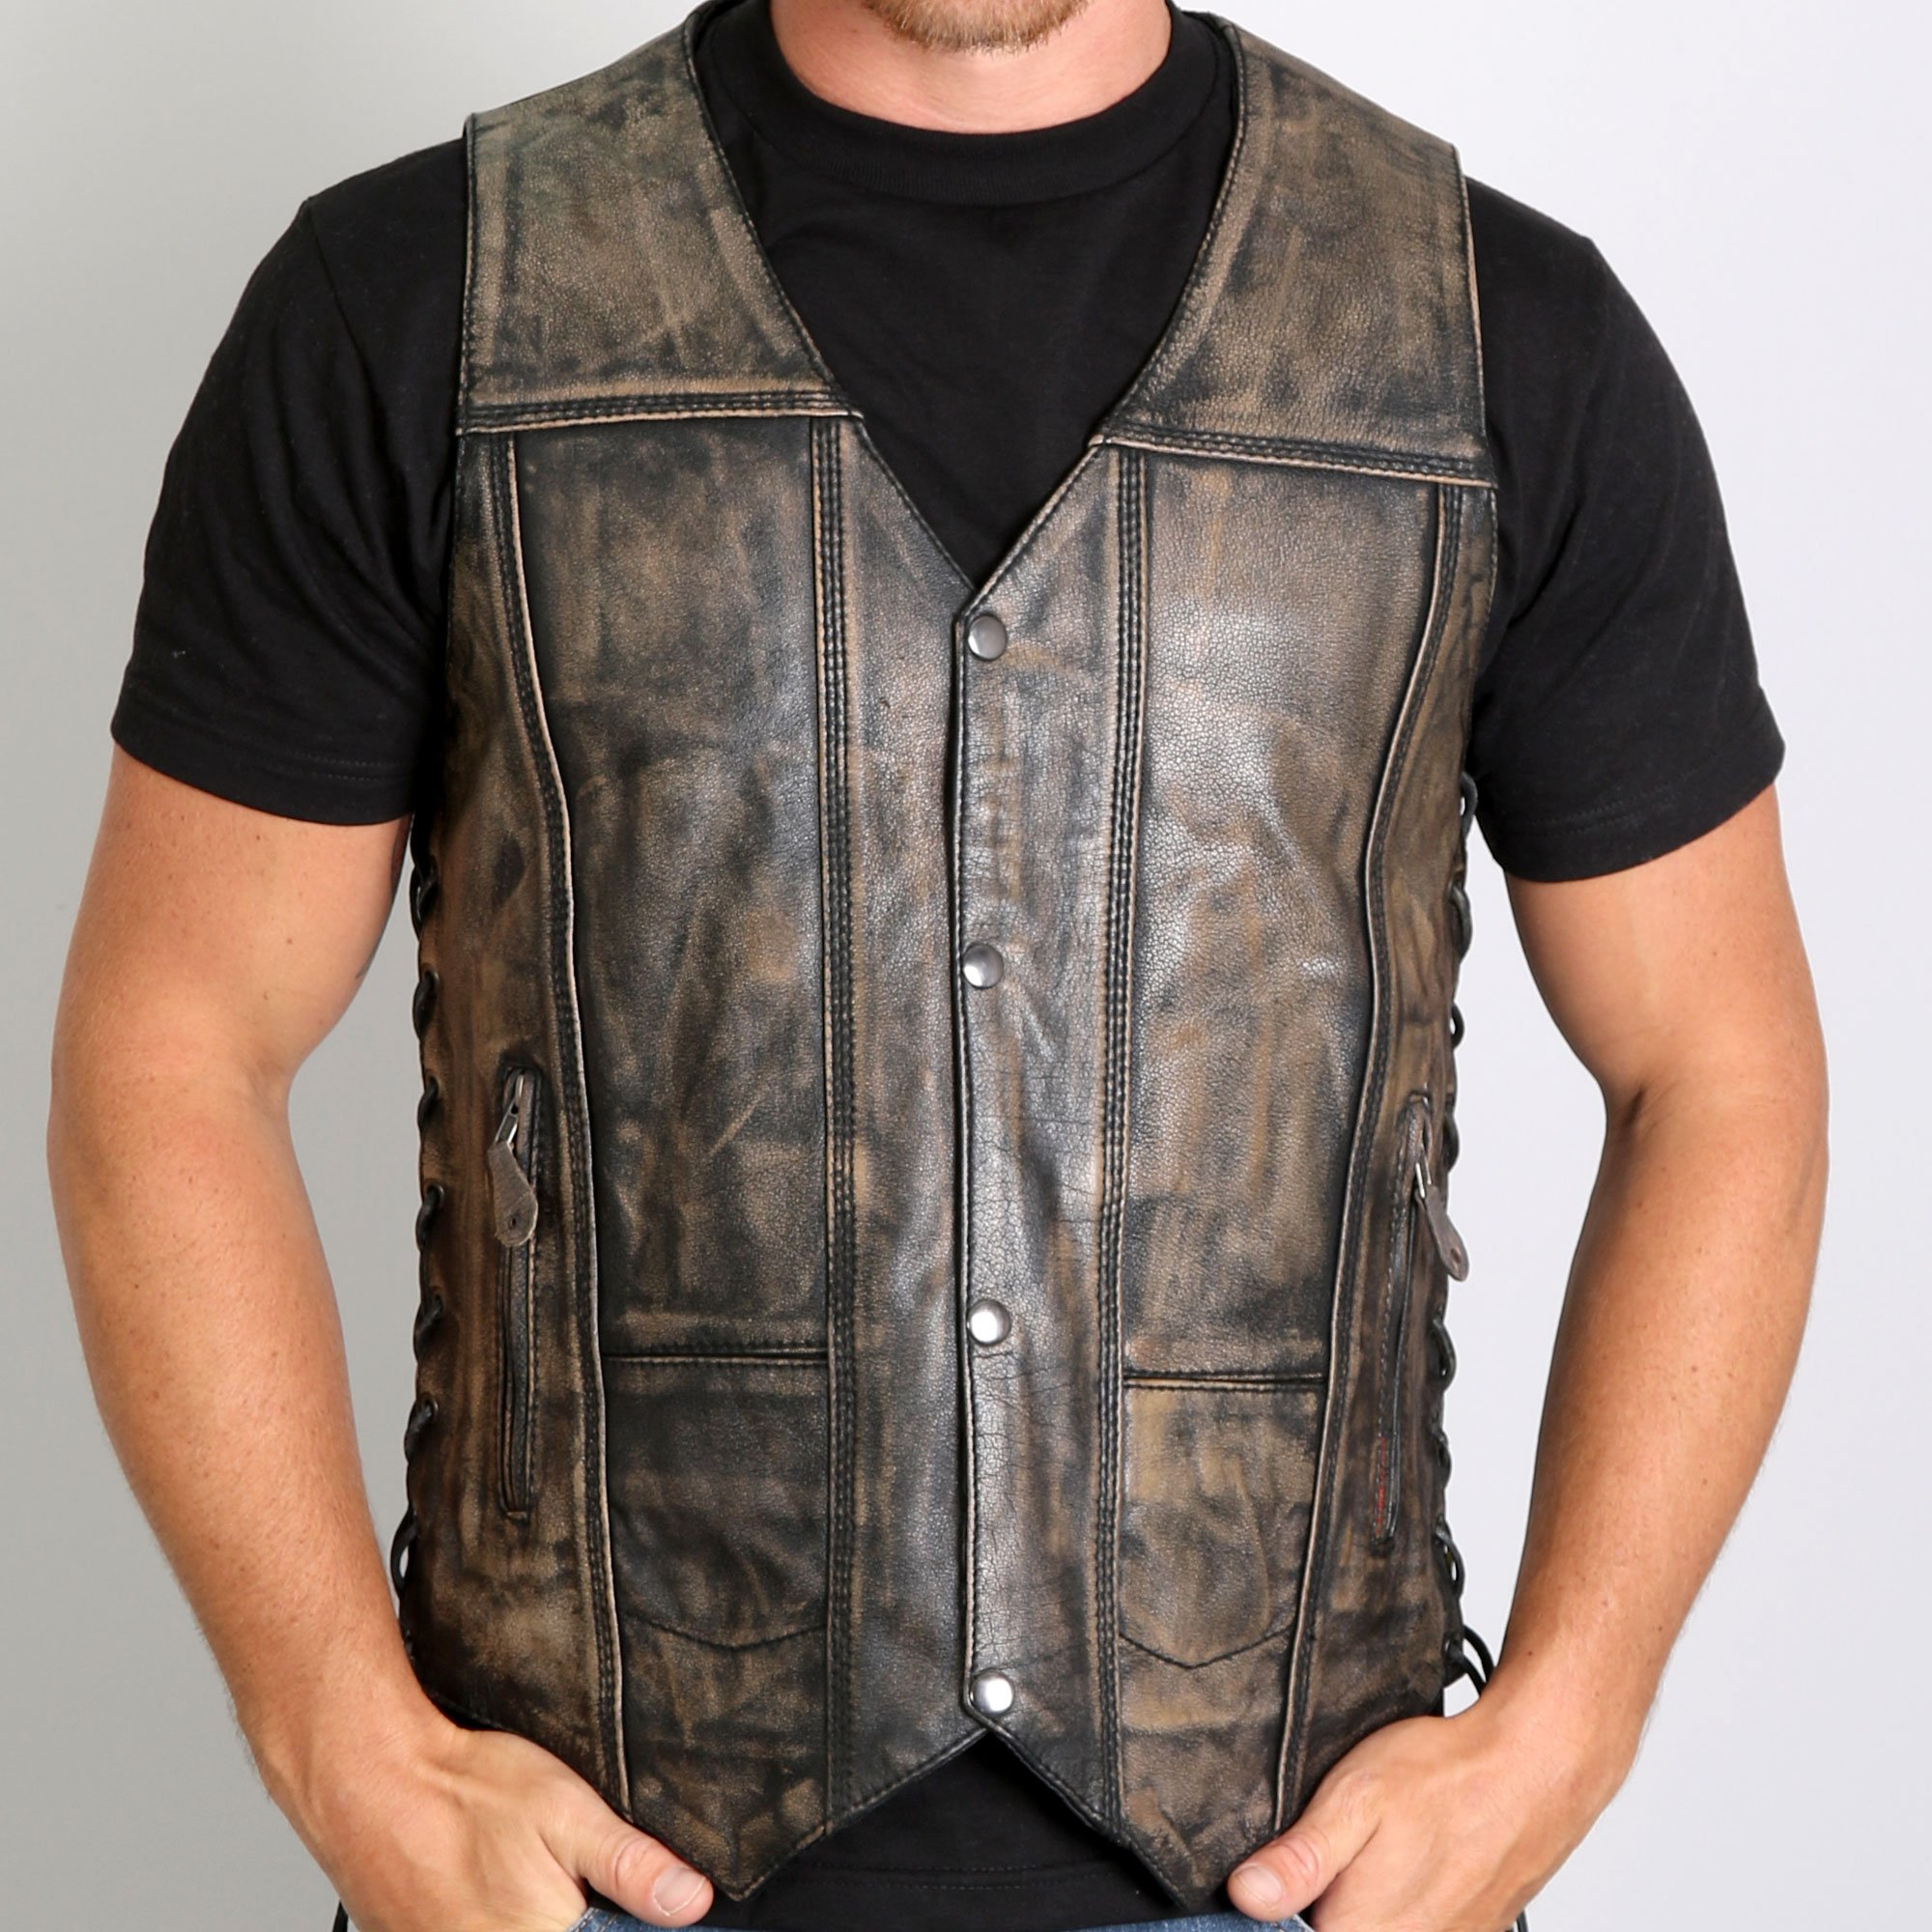 hot leathers menu0027s distressed brown leather vest w/